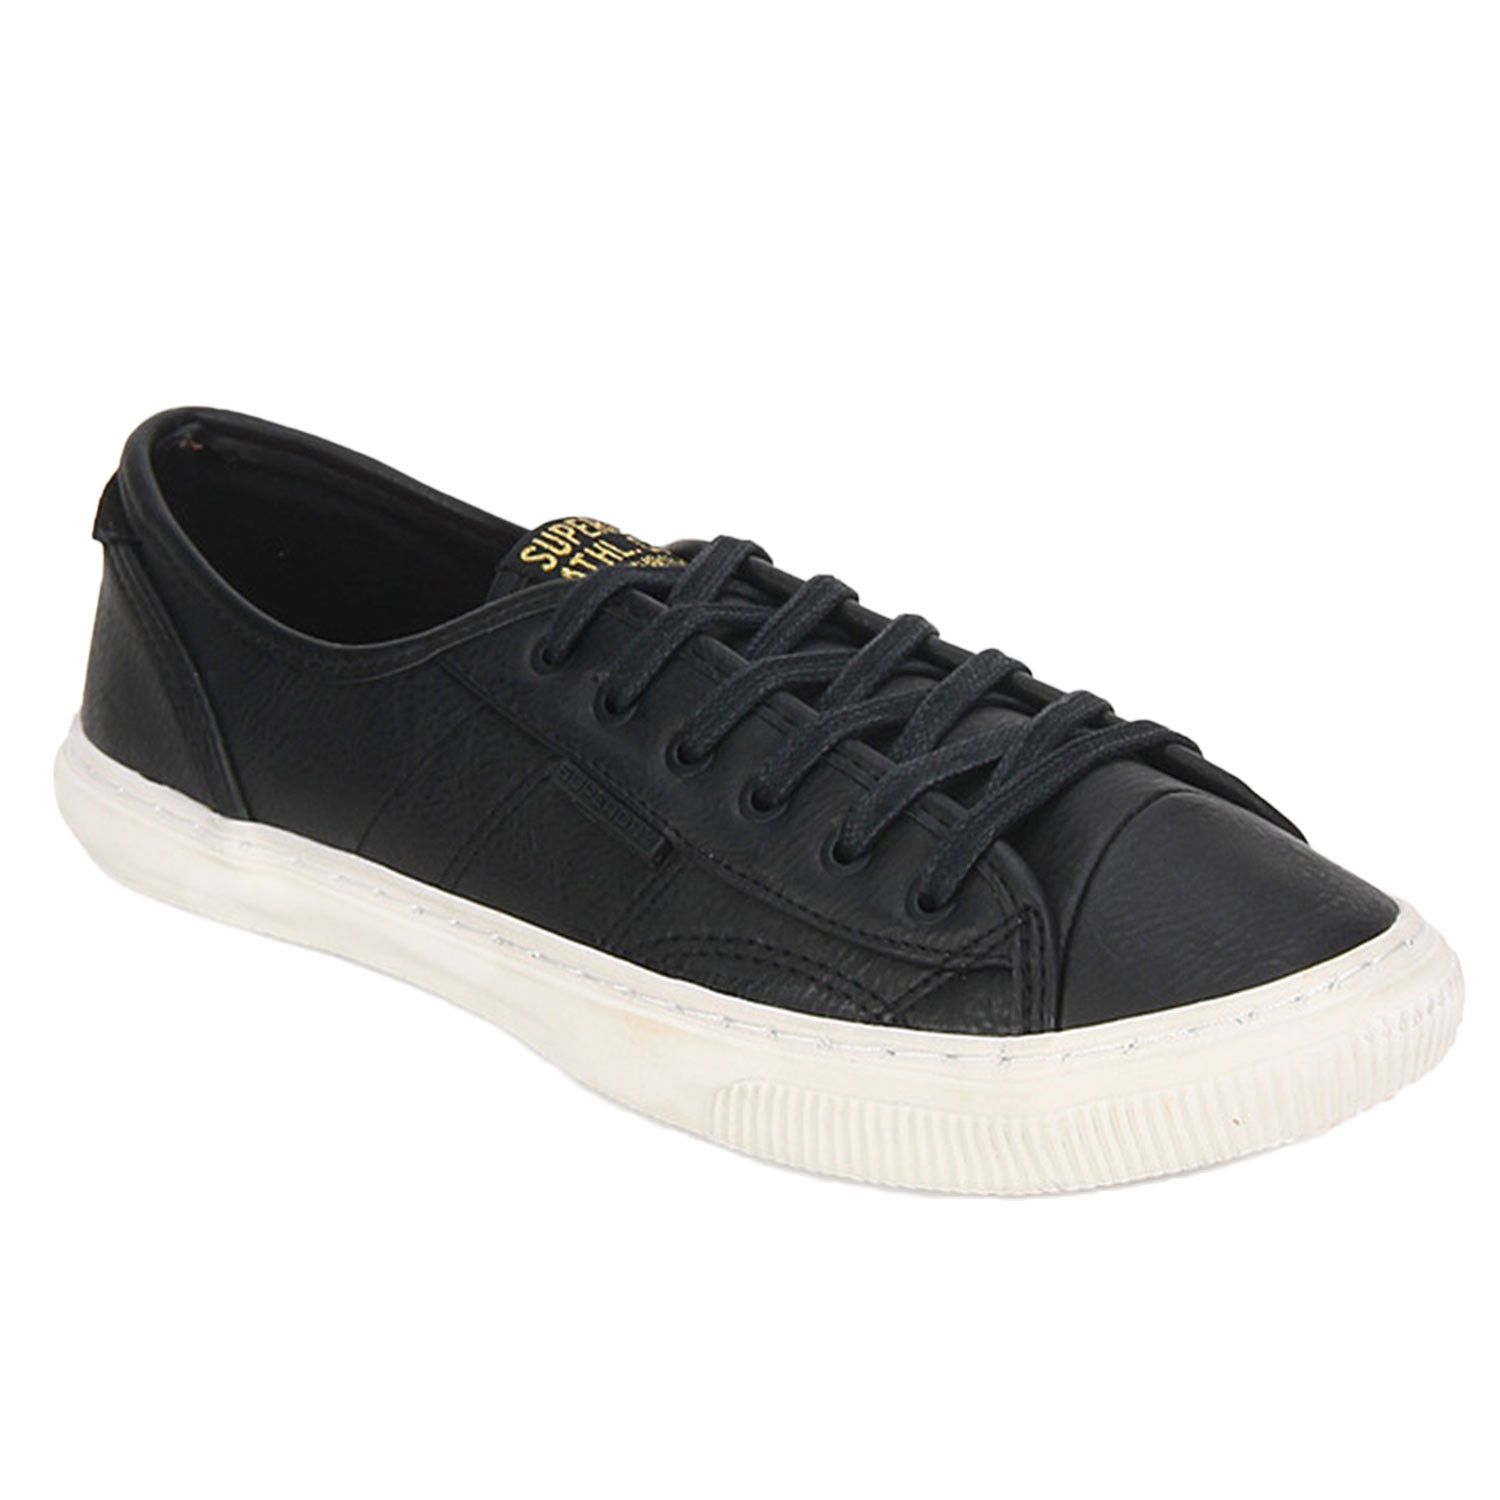 Low Pro Luxe Chaussure Femme